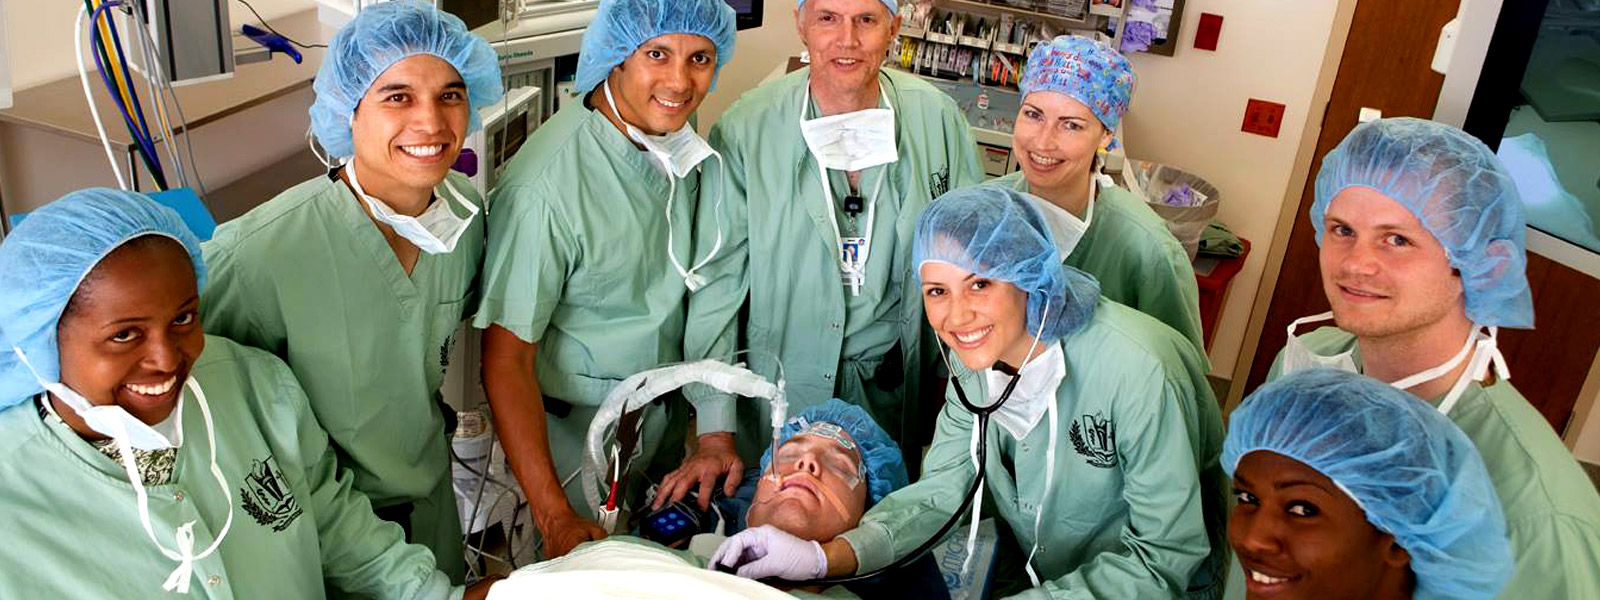 nurse anesthetists in healthcare essay Crna's impact on healthcare crna's impact on healthcare research shows that certified registered nurse anesthetists (crnas).